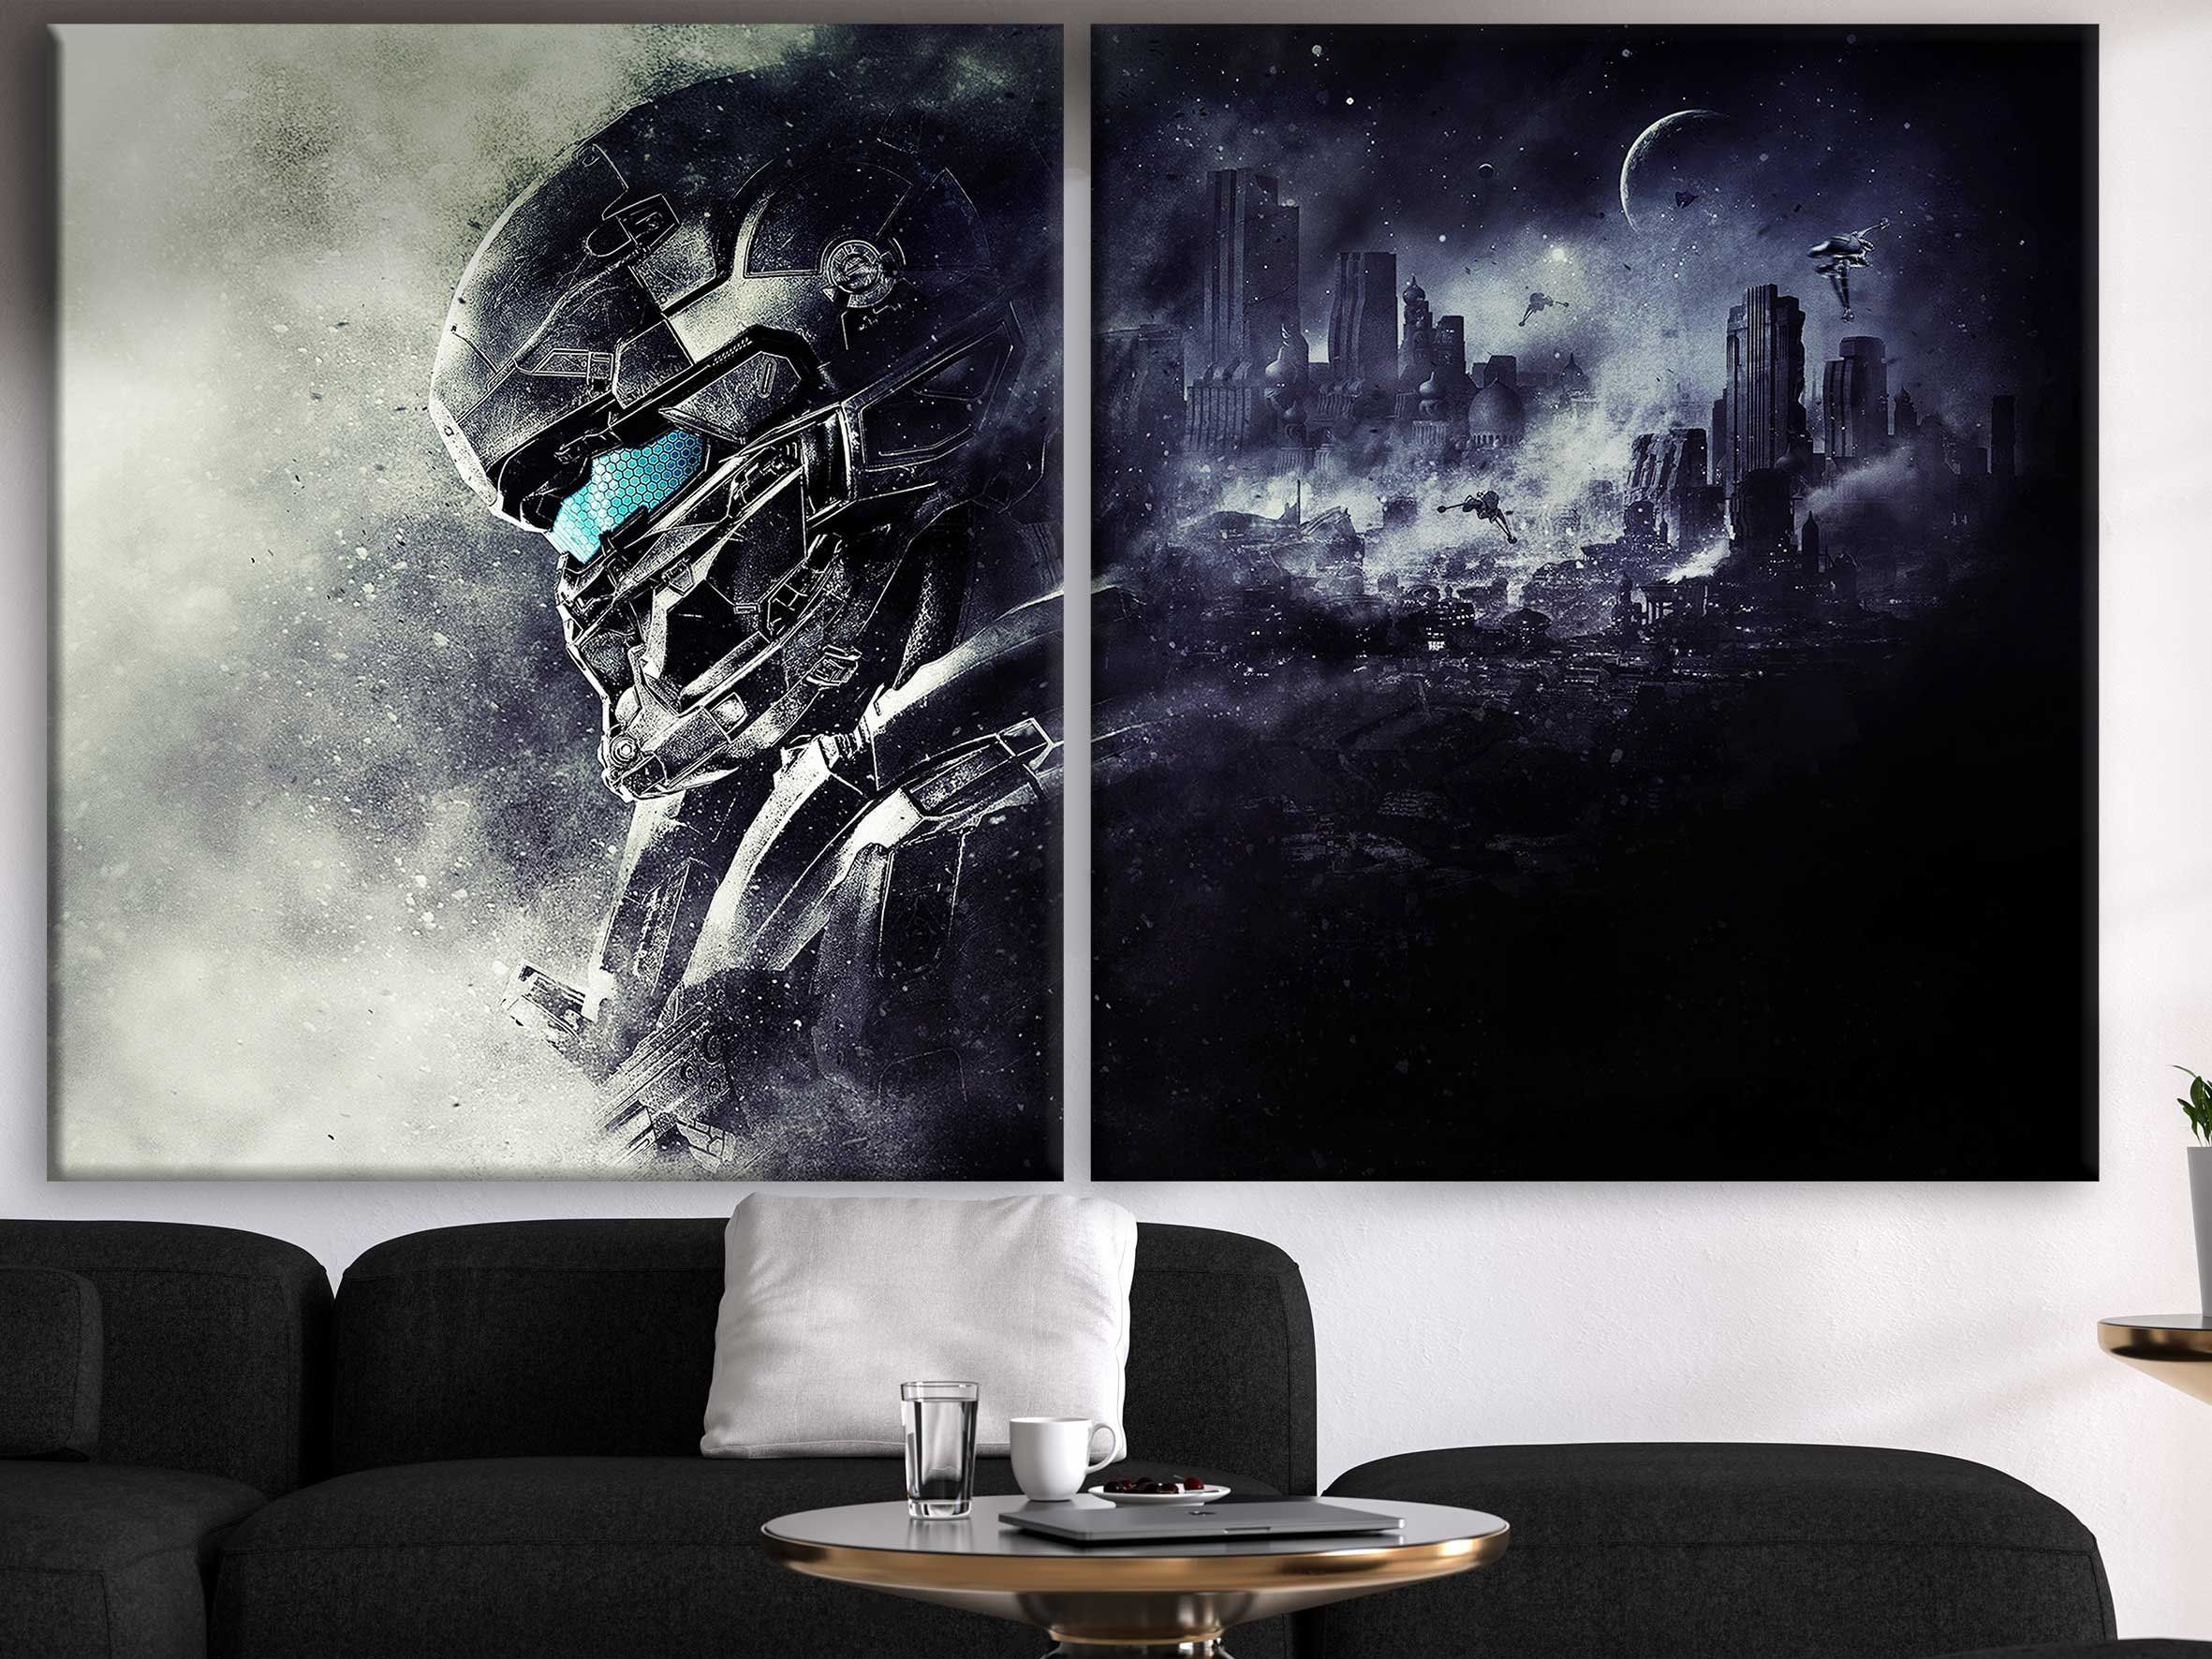 Halo Video Game Art Halo Wars 2 Master Chief Gun Artwork Gamer Room Decor Gemer Gift Idea #gamerroom